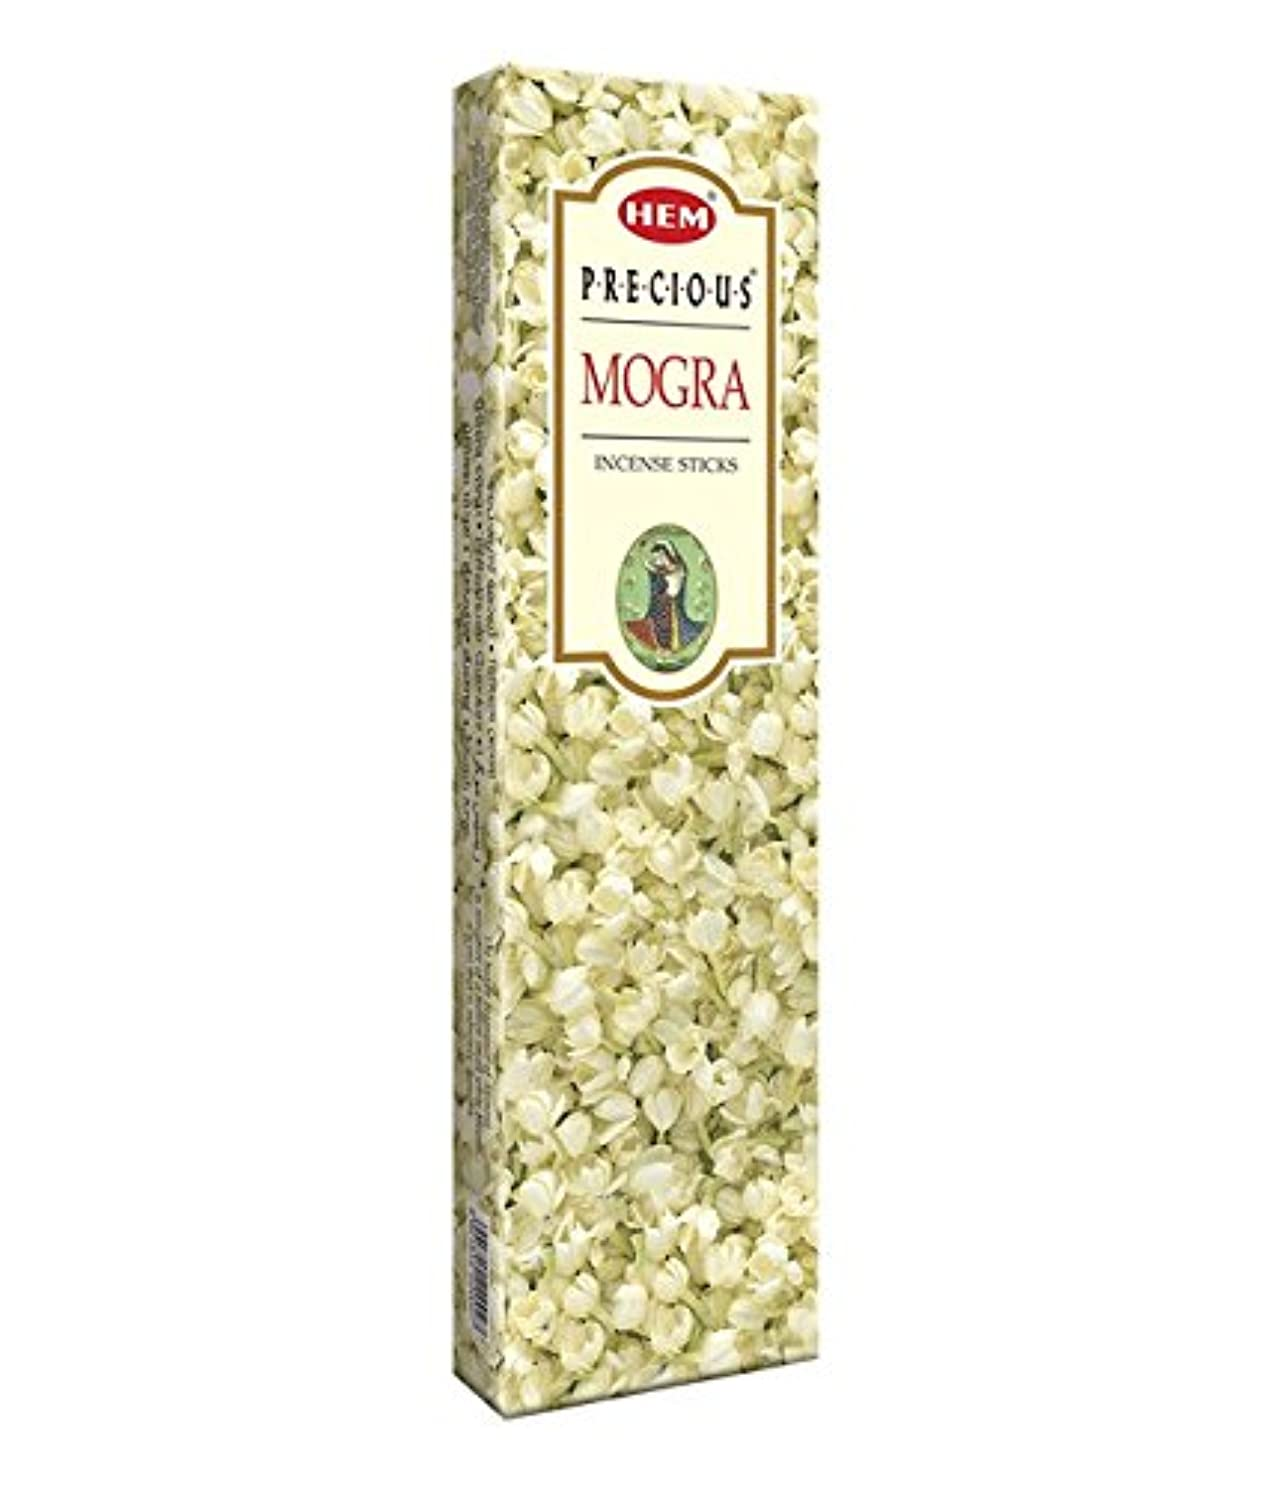 原始的な利点いつでもAgarbathi Fragrance Hem Precious Mogra 100 g INCENSE STICKS